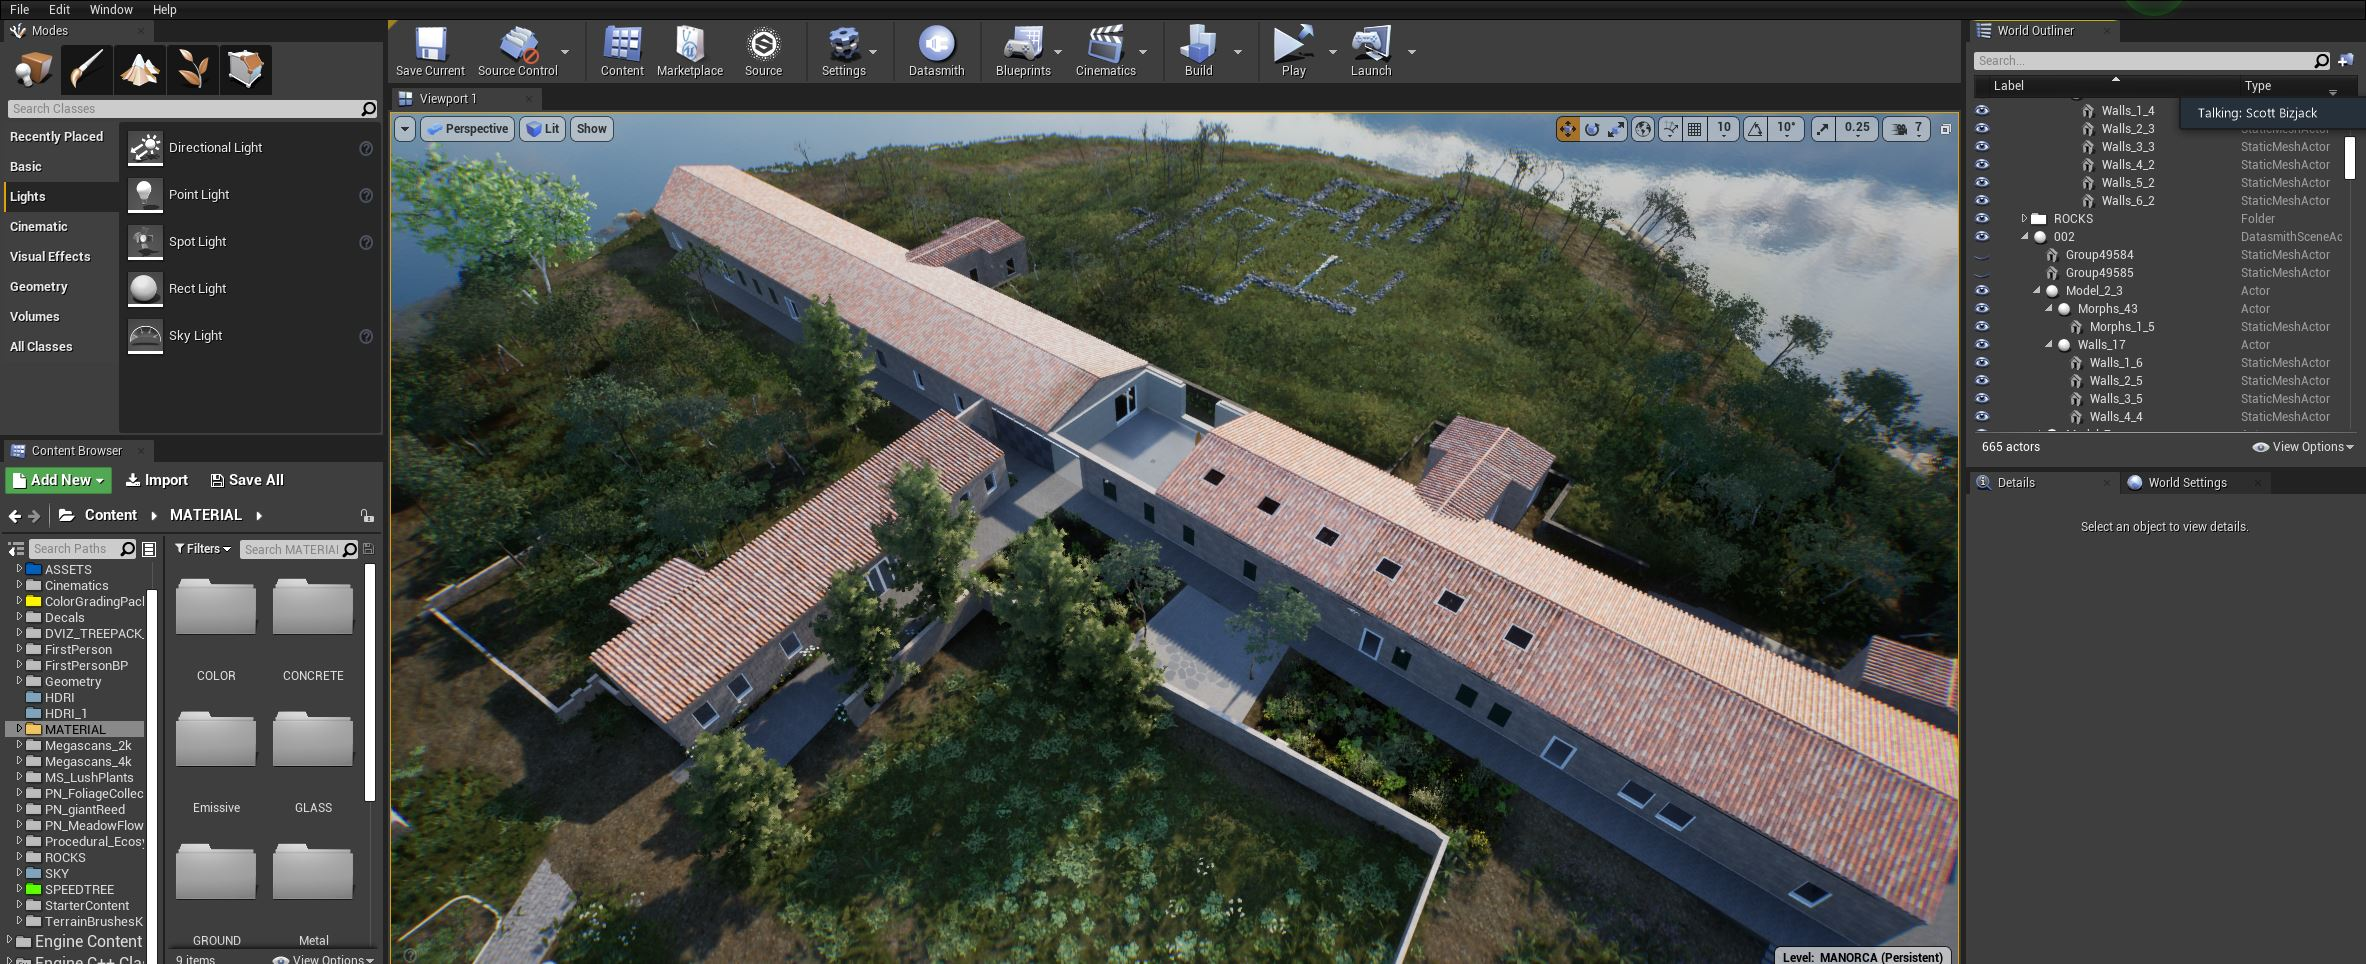 ArtLab, in software Hauser & Wirth Menorca exterior view created in HWVR Courtesy Hauser & Wirth